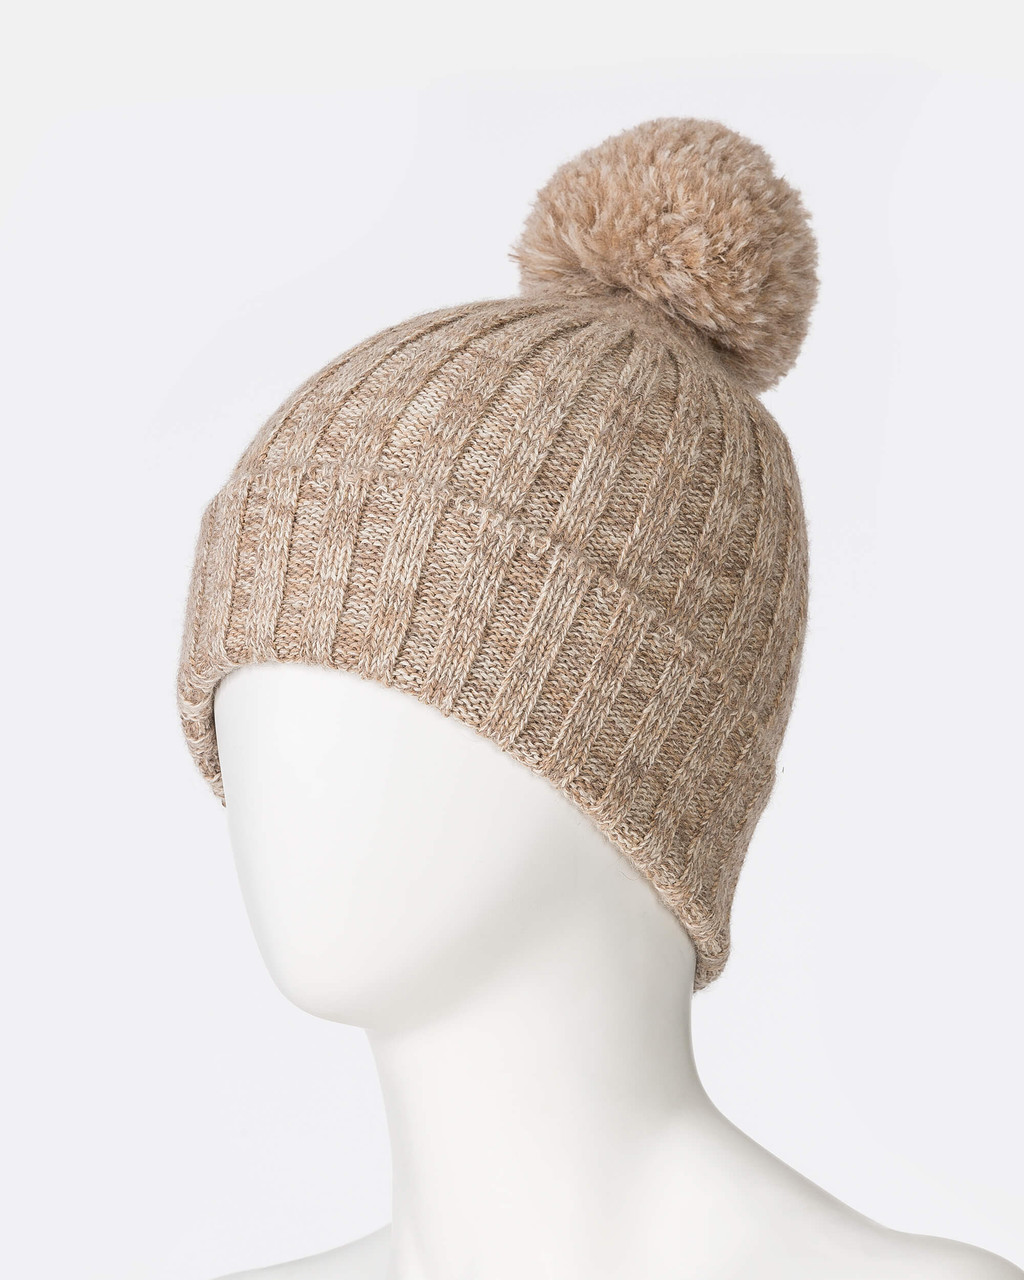 alicia adams alpaca davos hat, womens beanie hat, alpaca beanie hat,  all fair-trade made hat, alpaca vs cashmere, taupe tan alpaca hat